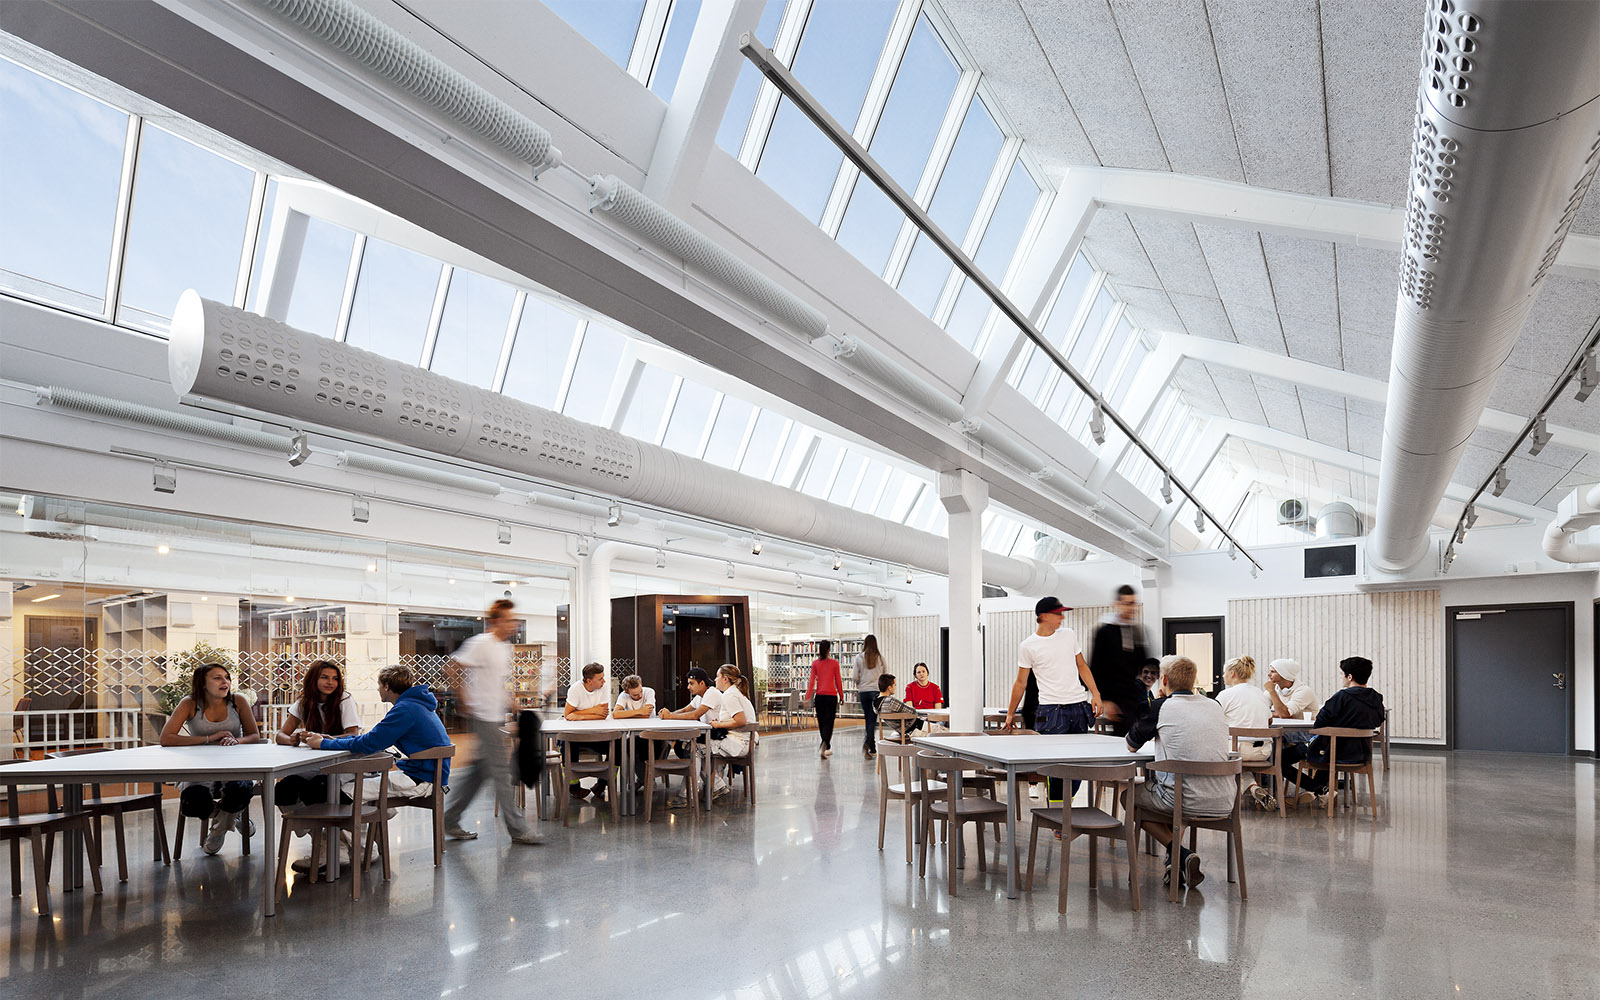 School cafeteria filled with natural light from overhead skylights